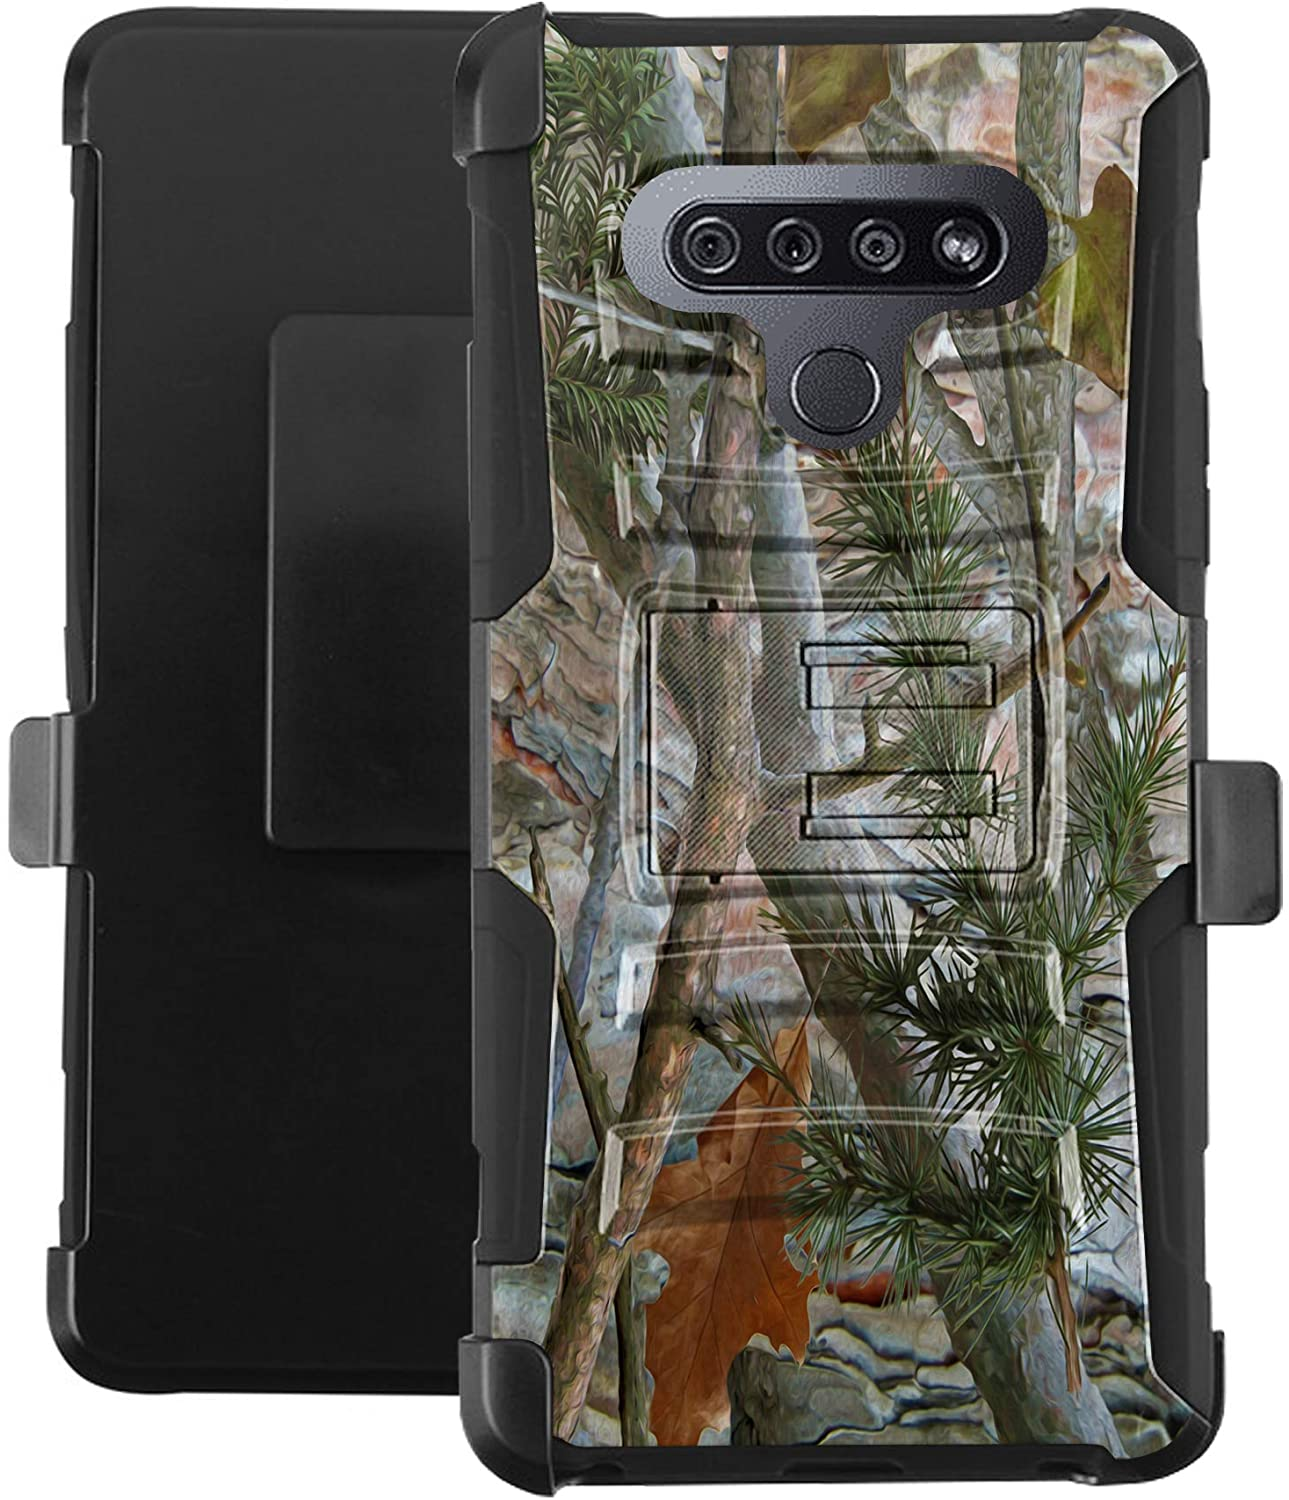 DALUX Hybrid Kickstand Holster Phone Case Compatible with K51 / Reflect- Camo Branches